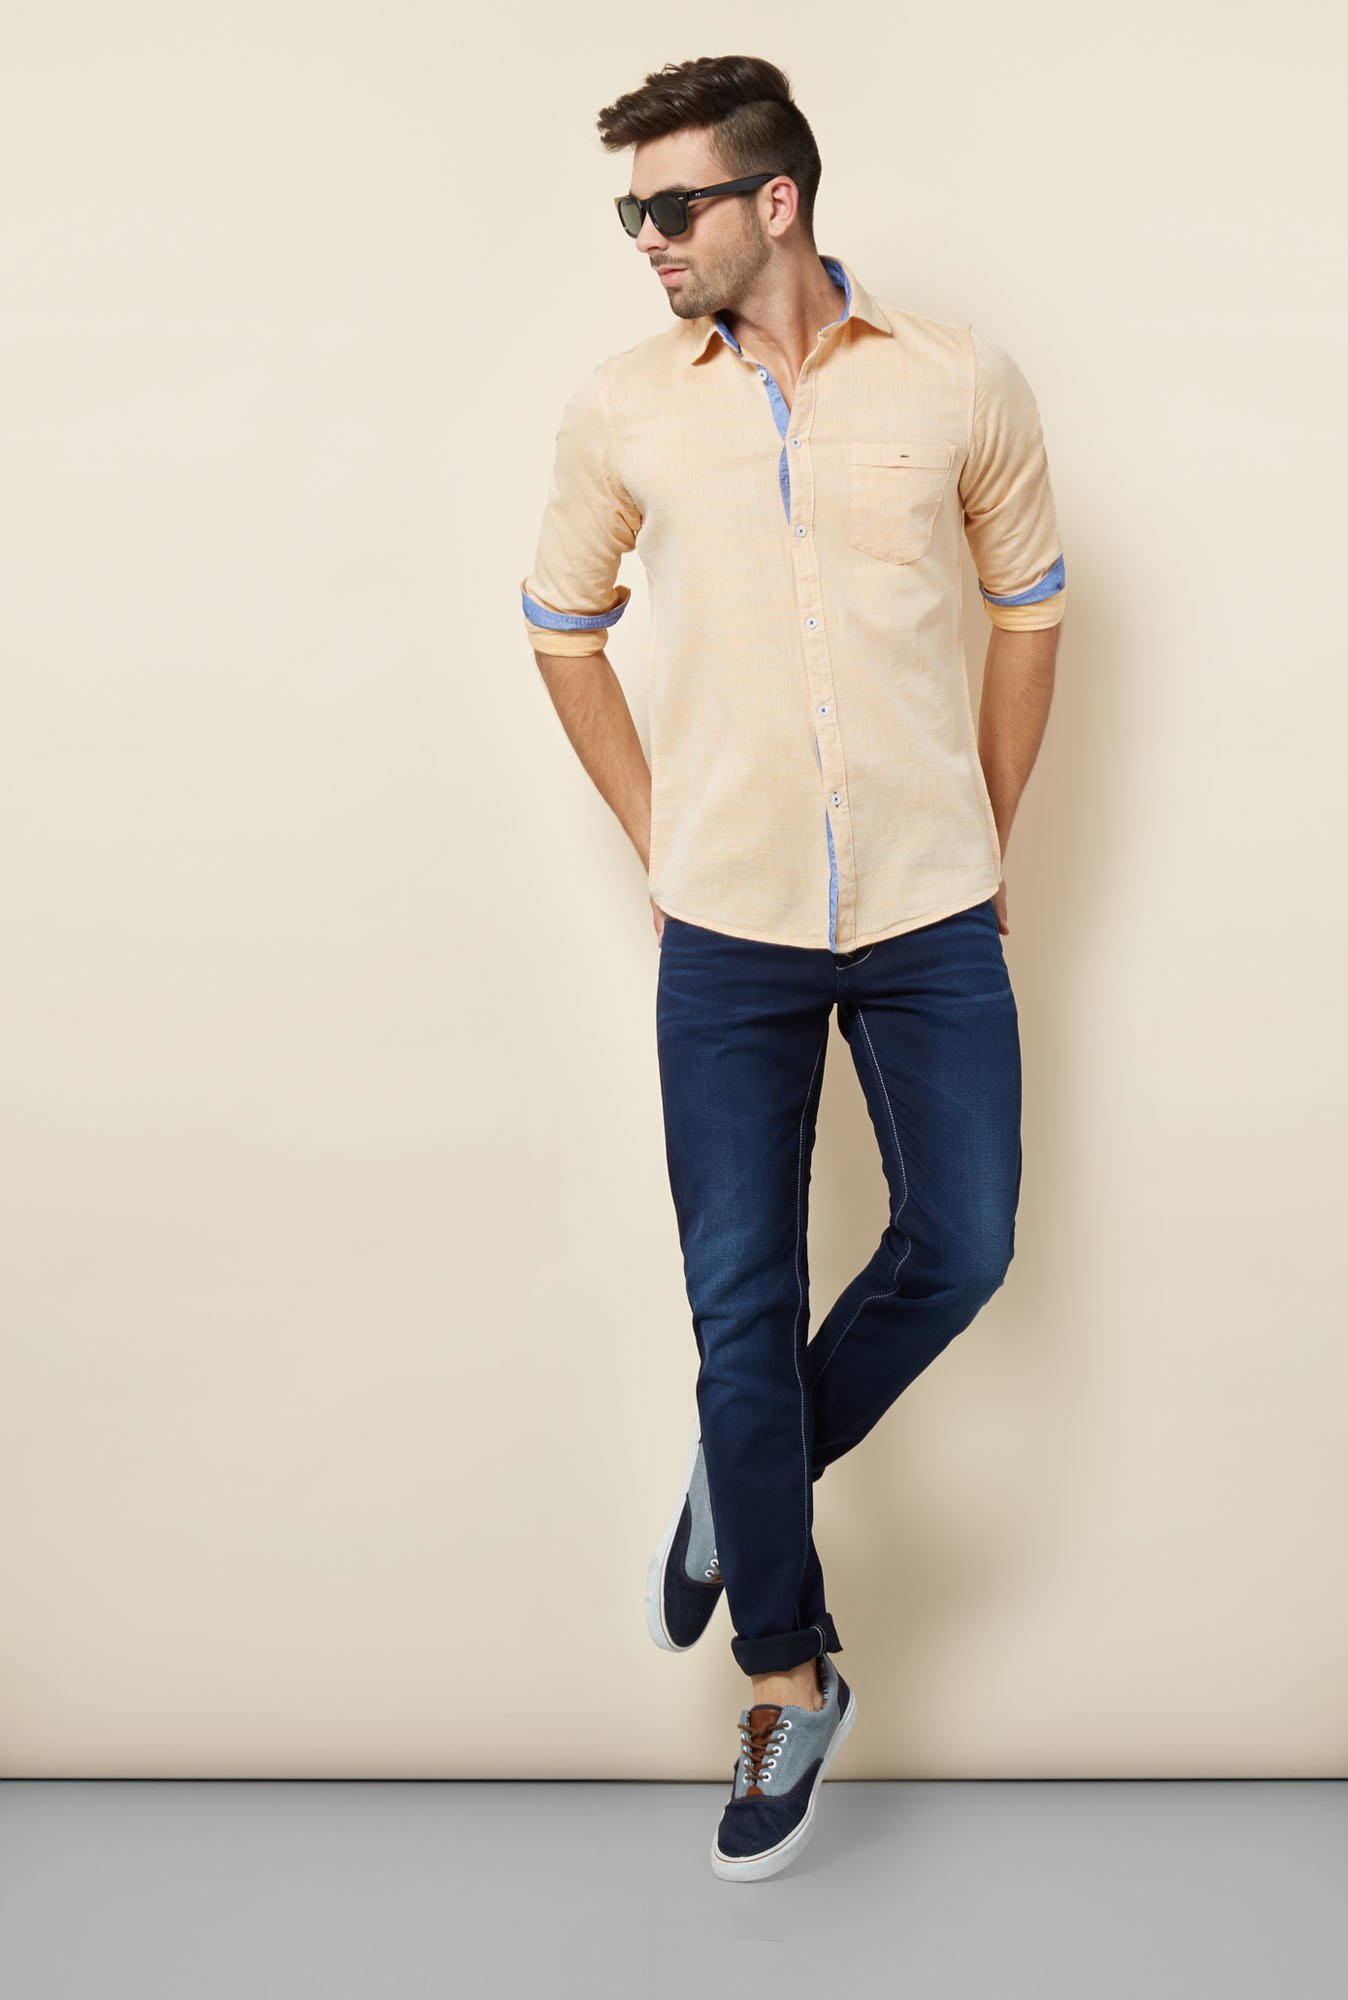 Lawman Ochre Solid Casual Shirt